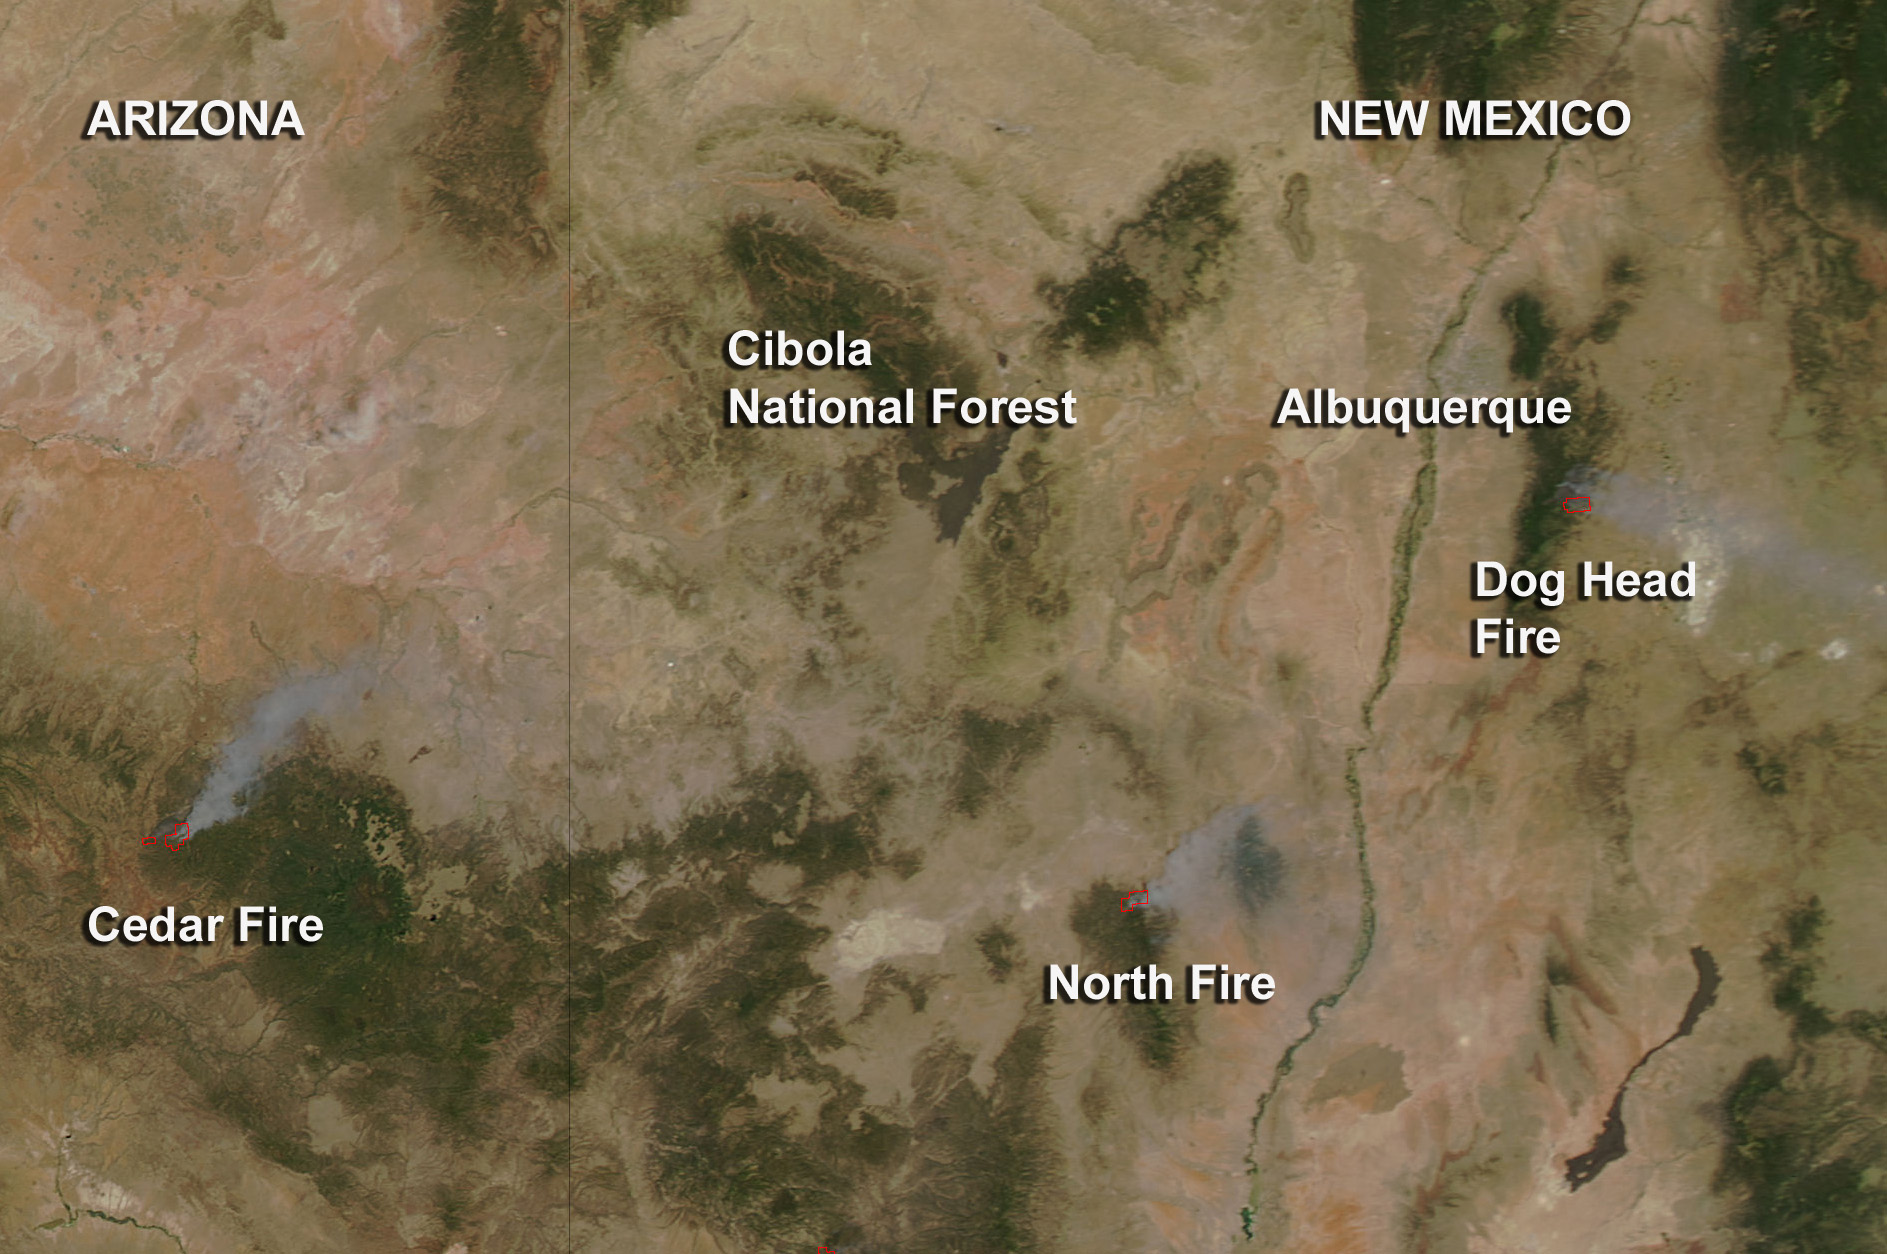 Fires in New Mexico and Arizona | NASA